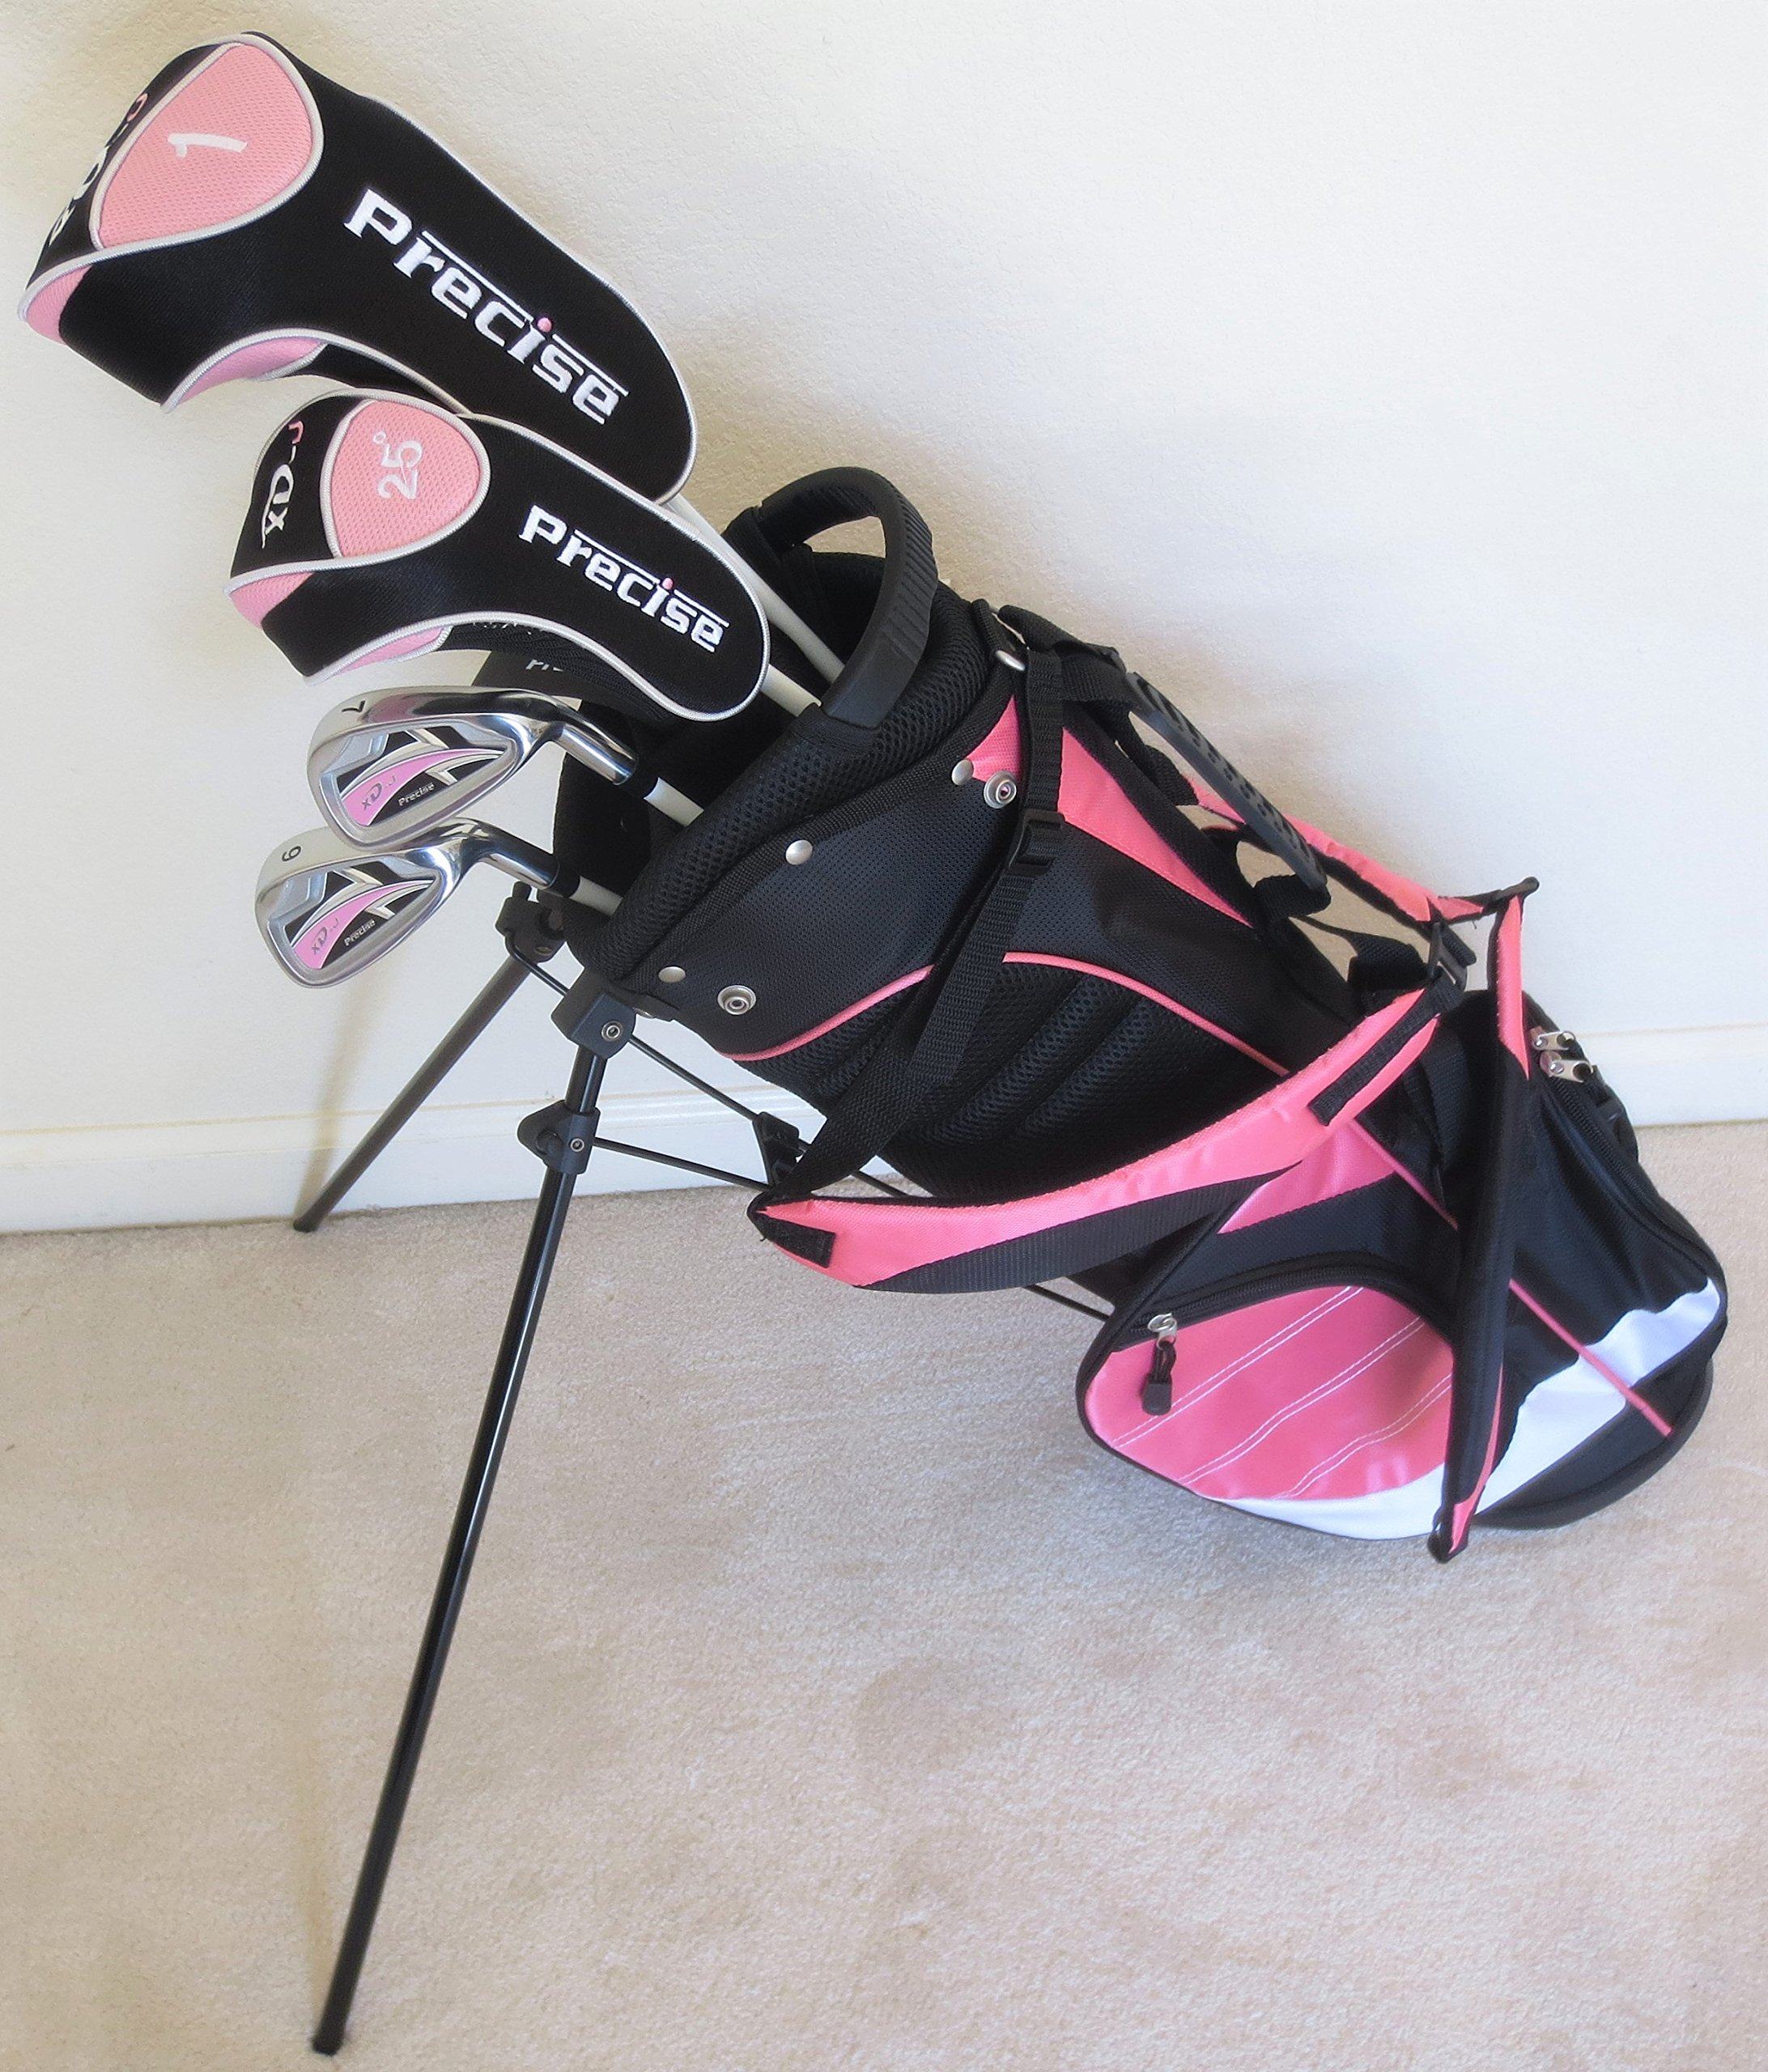 Girls Ages 5-8 Junior Golf Club Set Complete Driver, Hybrid, Irons, Putter, Stand Bag for Kids Pink Color Jr. by Junior Tour Golf Equipment (Image #1)